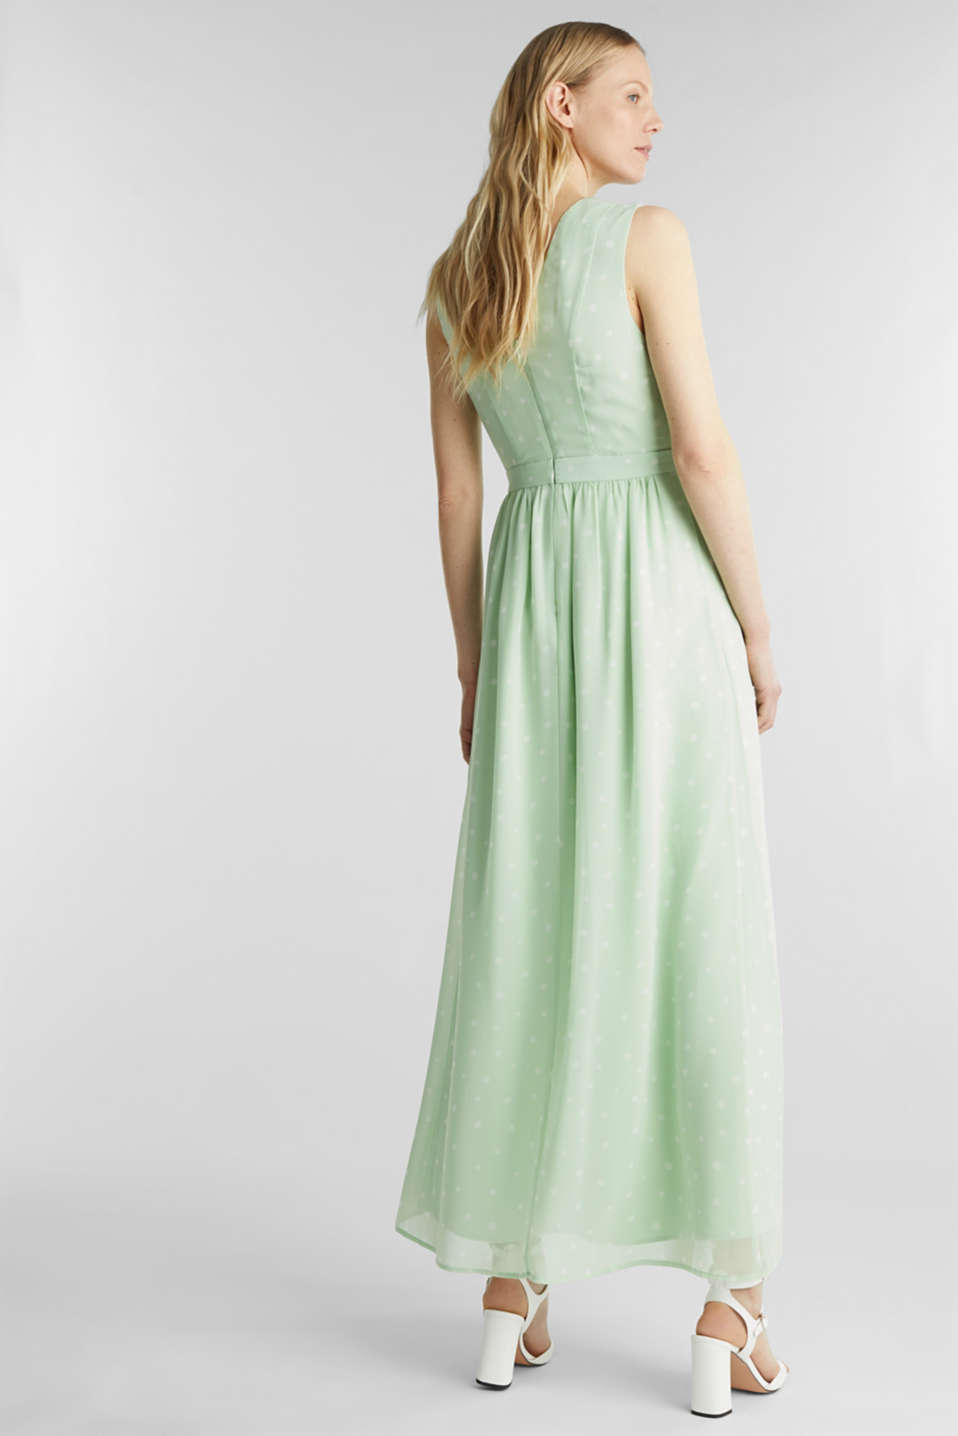 Wrap-over effect chiffon dress, PASTEL GREEN 4, detail image number 2